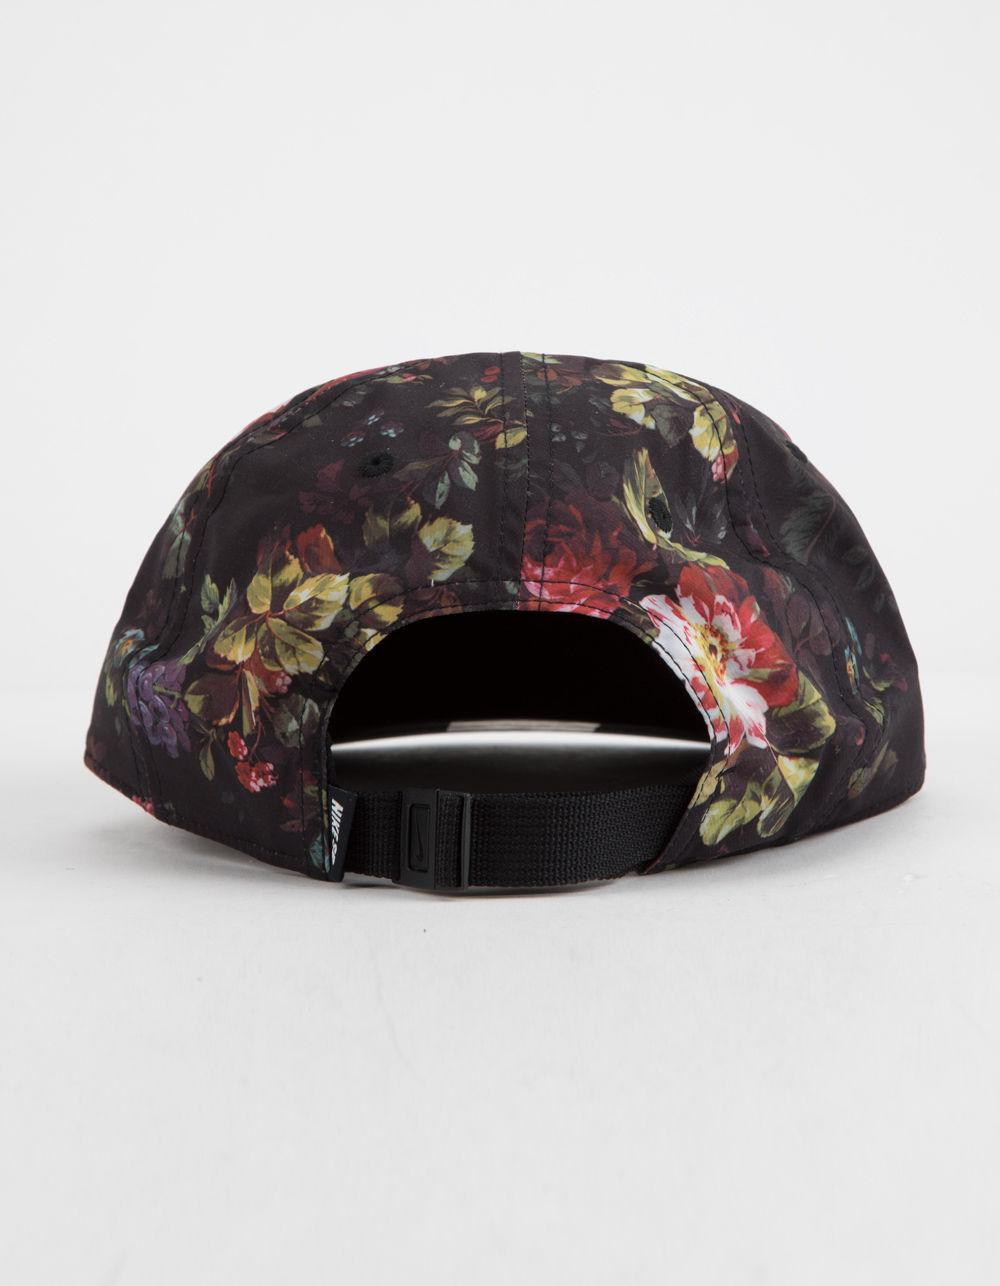 6a1375a54f Lyst - Nike Dri-fit Heritage 86 Floral Strapback Hat in Black for Men